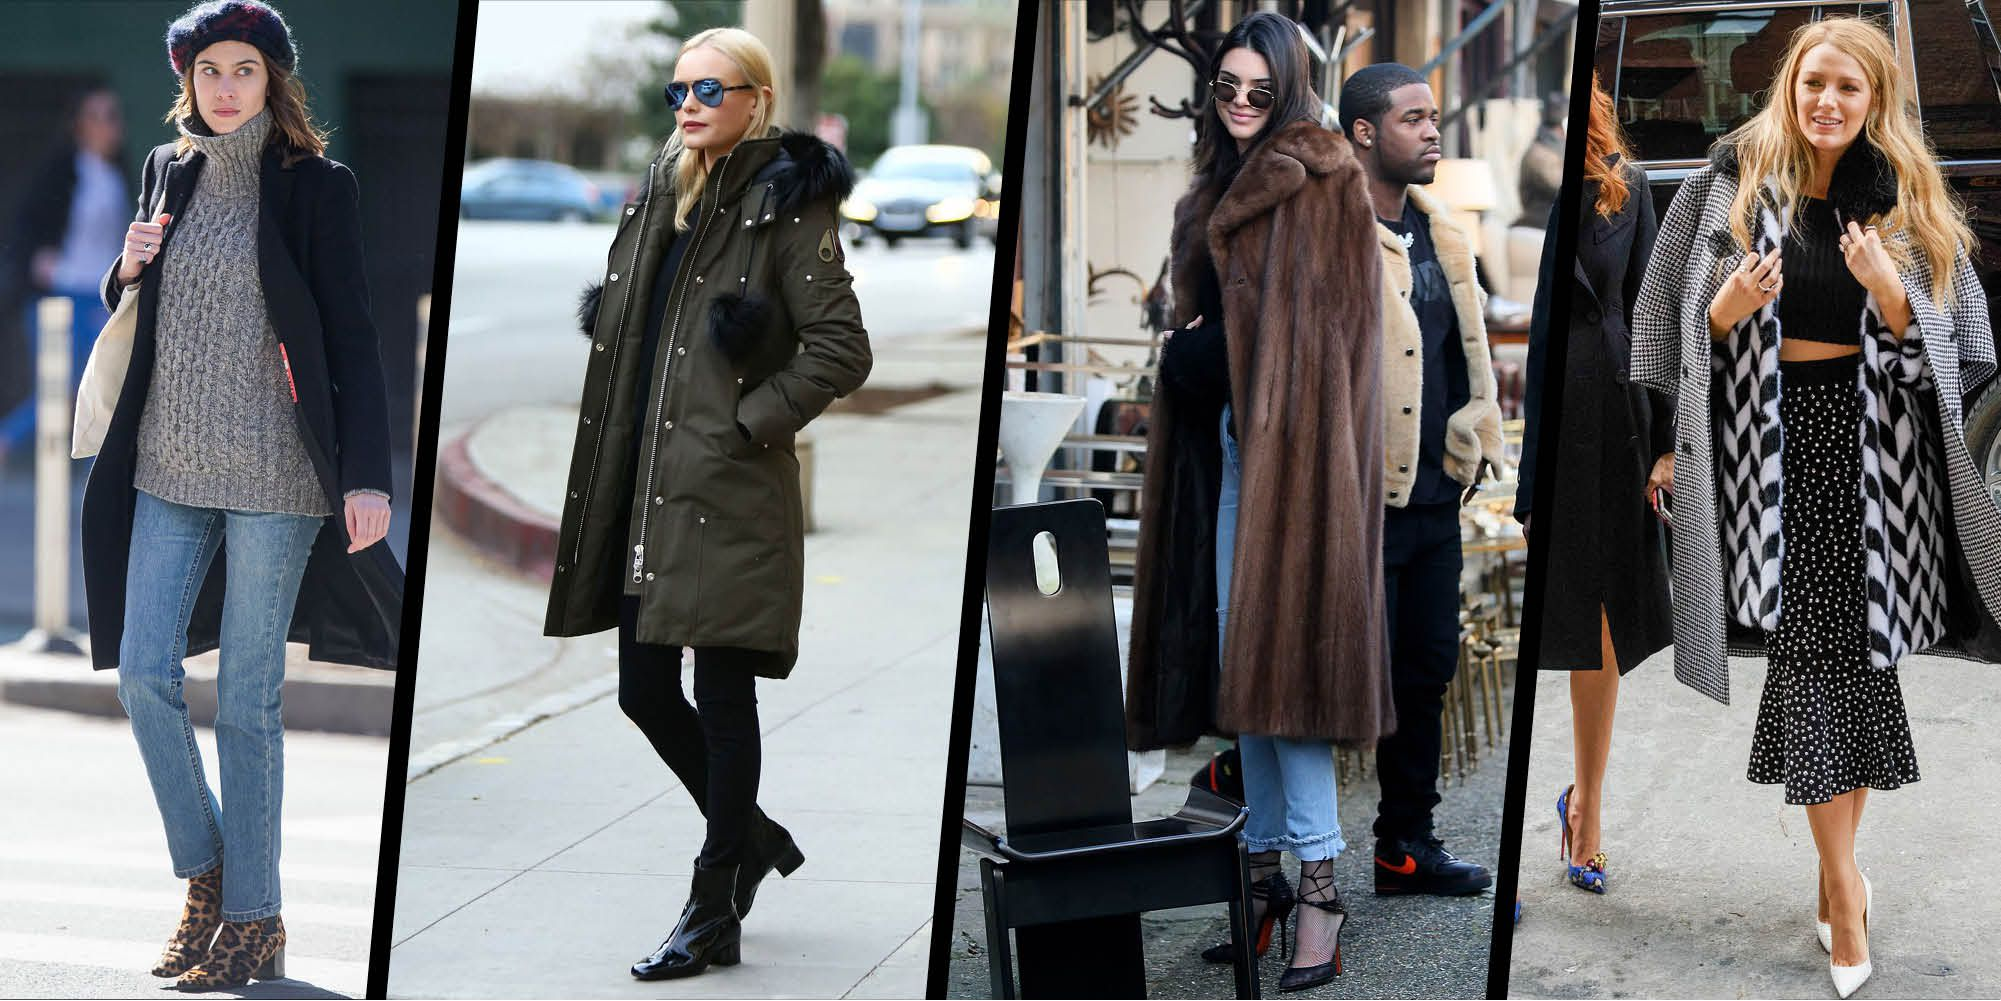 Winter style inspiration from the A-list u2013 Celebrity style